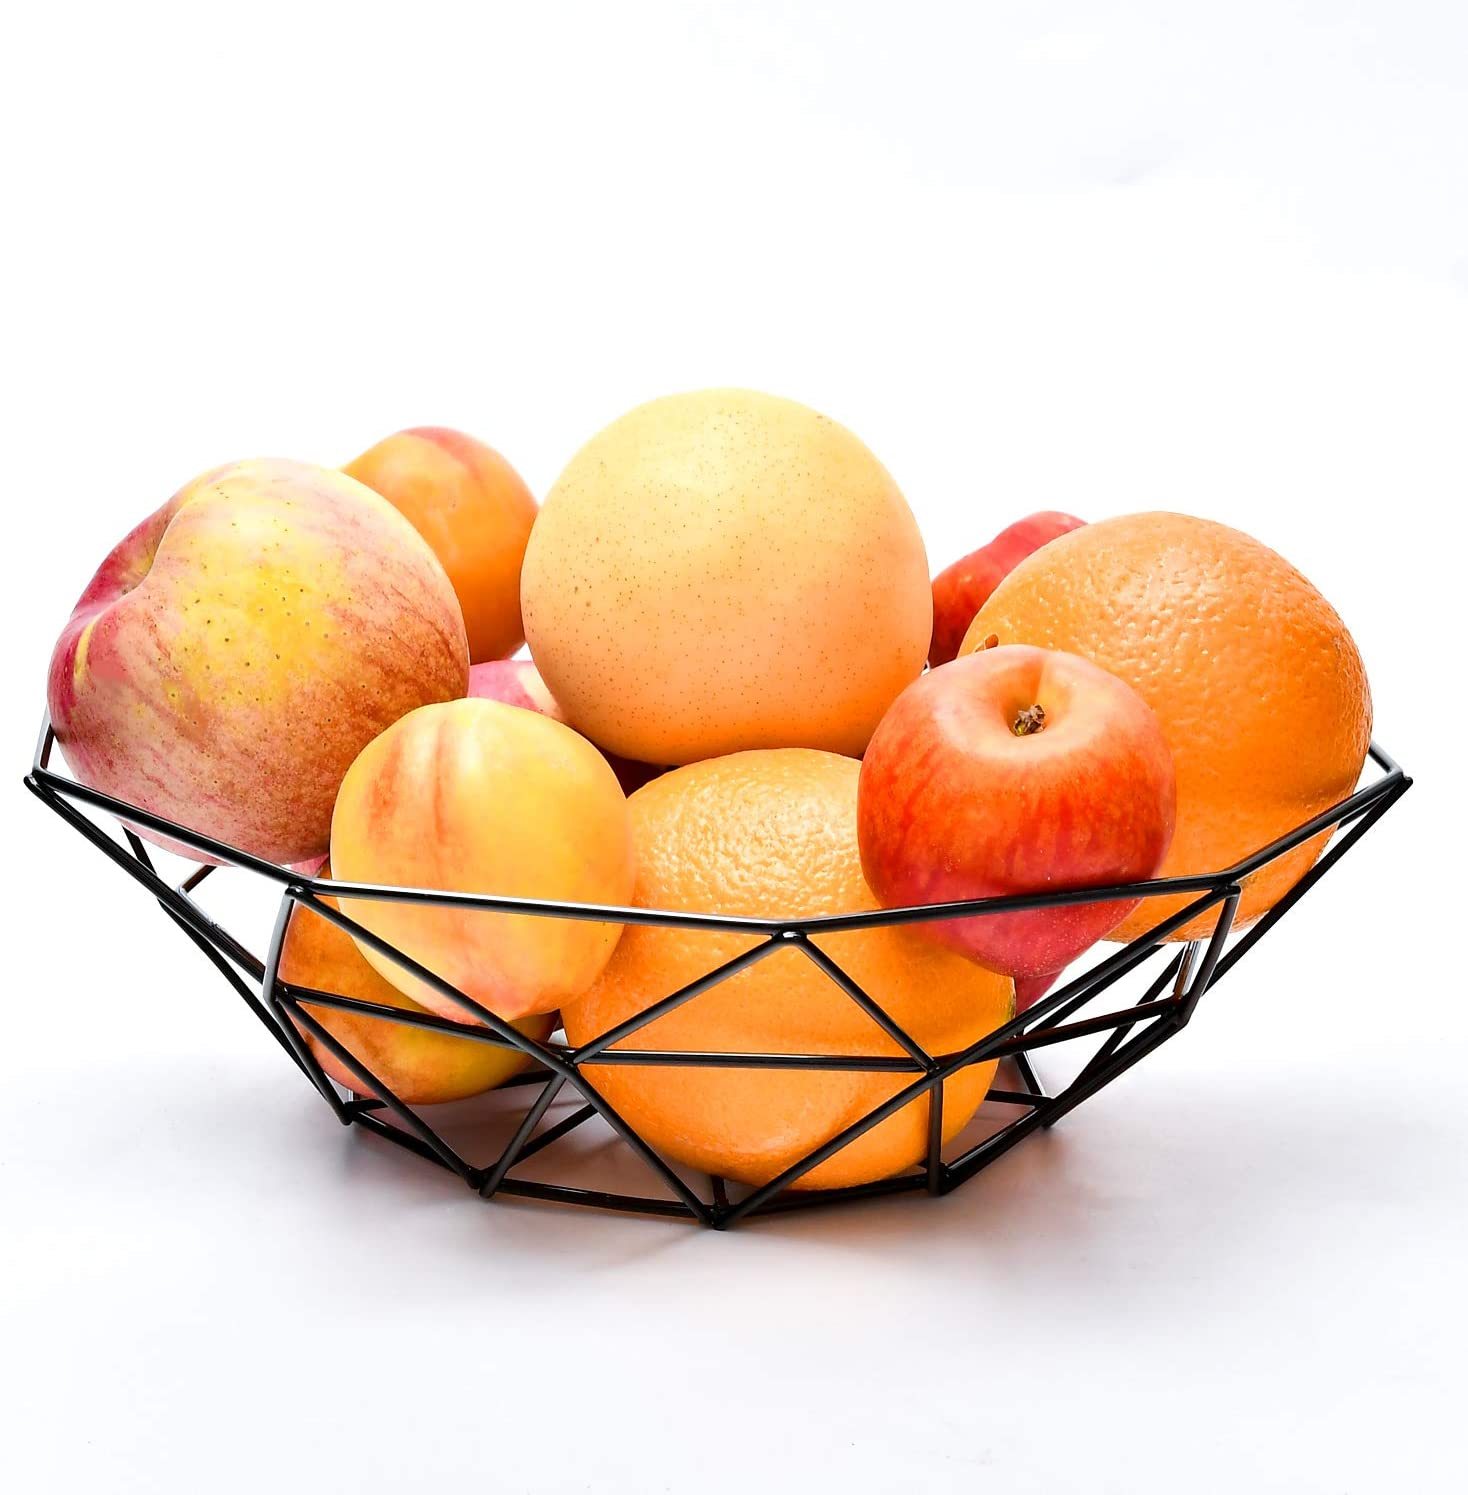 Creative Fruit Bowl, Basket Holder for Kitchen Counter, Table Centerpiece Decorative, Living Room, Home Décor, Modern Stylish Rack for Fruit and Vegetable